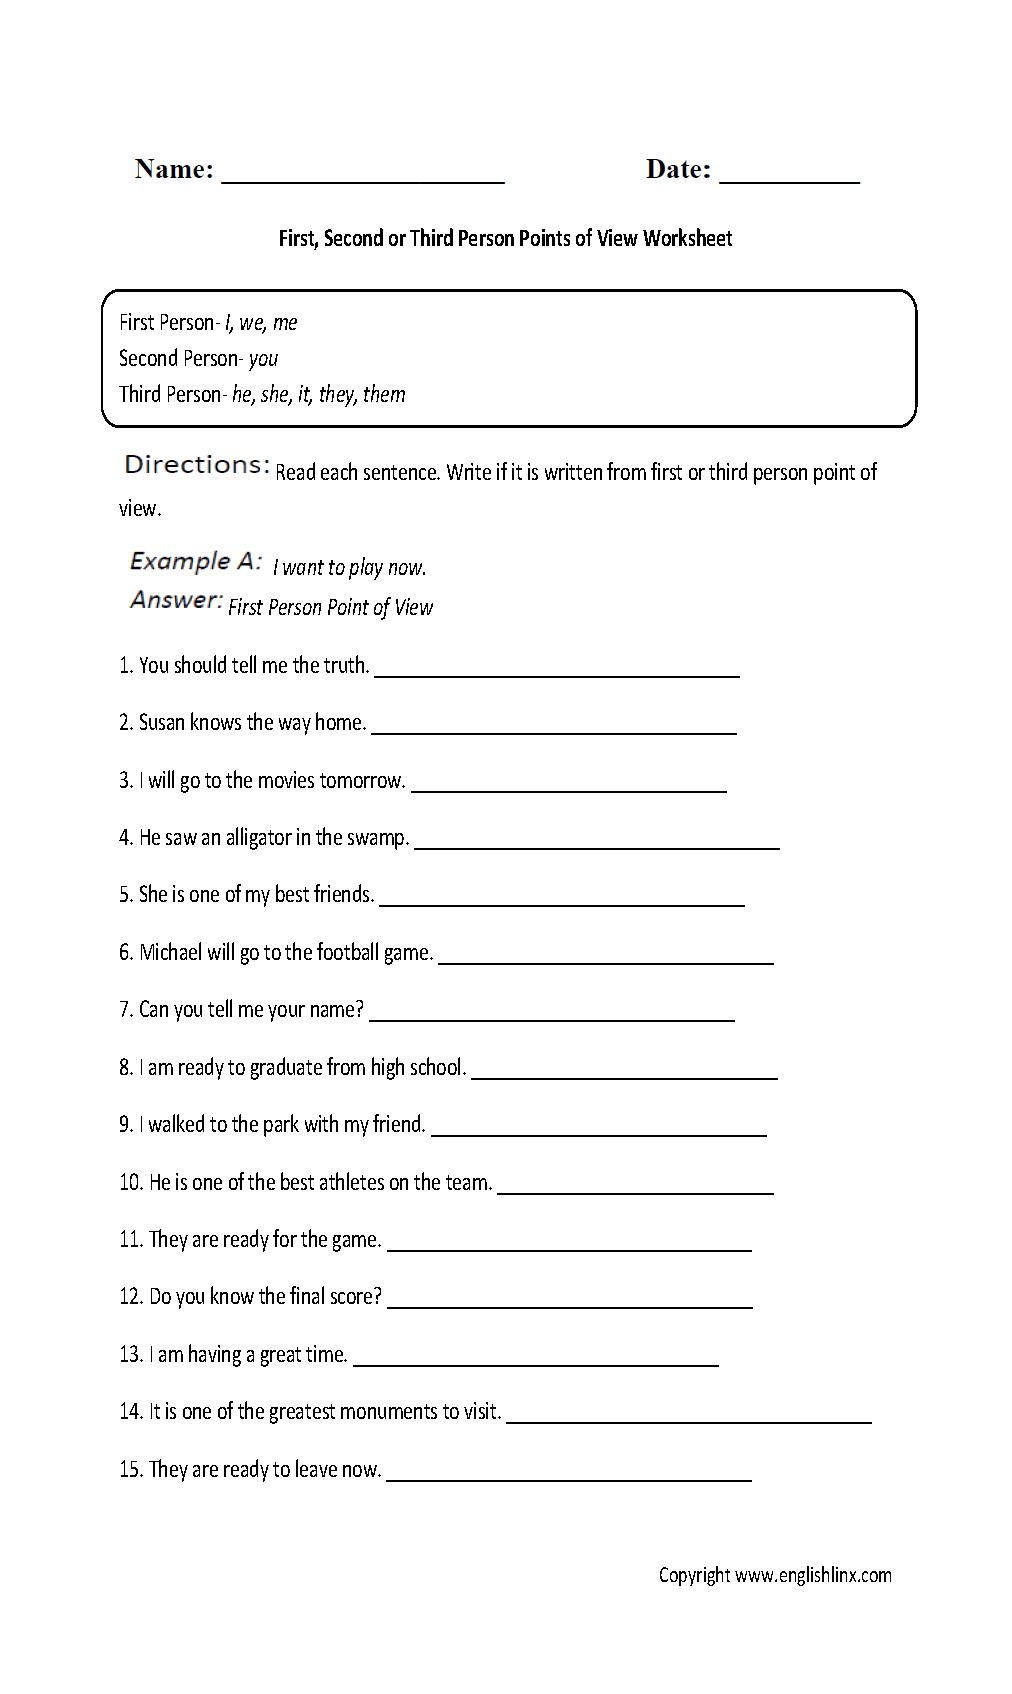 Weirdmailus  Surprising Englishlinxcom  Point Of View Worksheets With Excellent Point Of View Worksheet With Appealing Wombat Stew Worksheets Also Worksheet For Grade  In Addition Worksheets Of Parts Of Speech And Worksheet On Division For Grade  As Well As Mathematics Printable Worksheets Additionally Free Printable Math Worksheets First Grade From Englishlinxcom With Weirdmailus  Excellent Englishlinxcom  Point Of View Worksheets With Appealing Point Of View Worksheet And Surprising Wombat Stew Worksheets Also Worksheet For Grade  In Addition Worksheets Of Parts Of Speech From Englishlinxcom